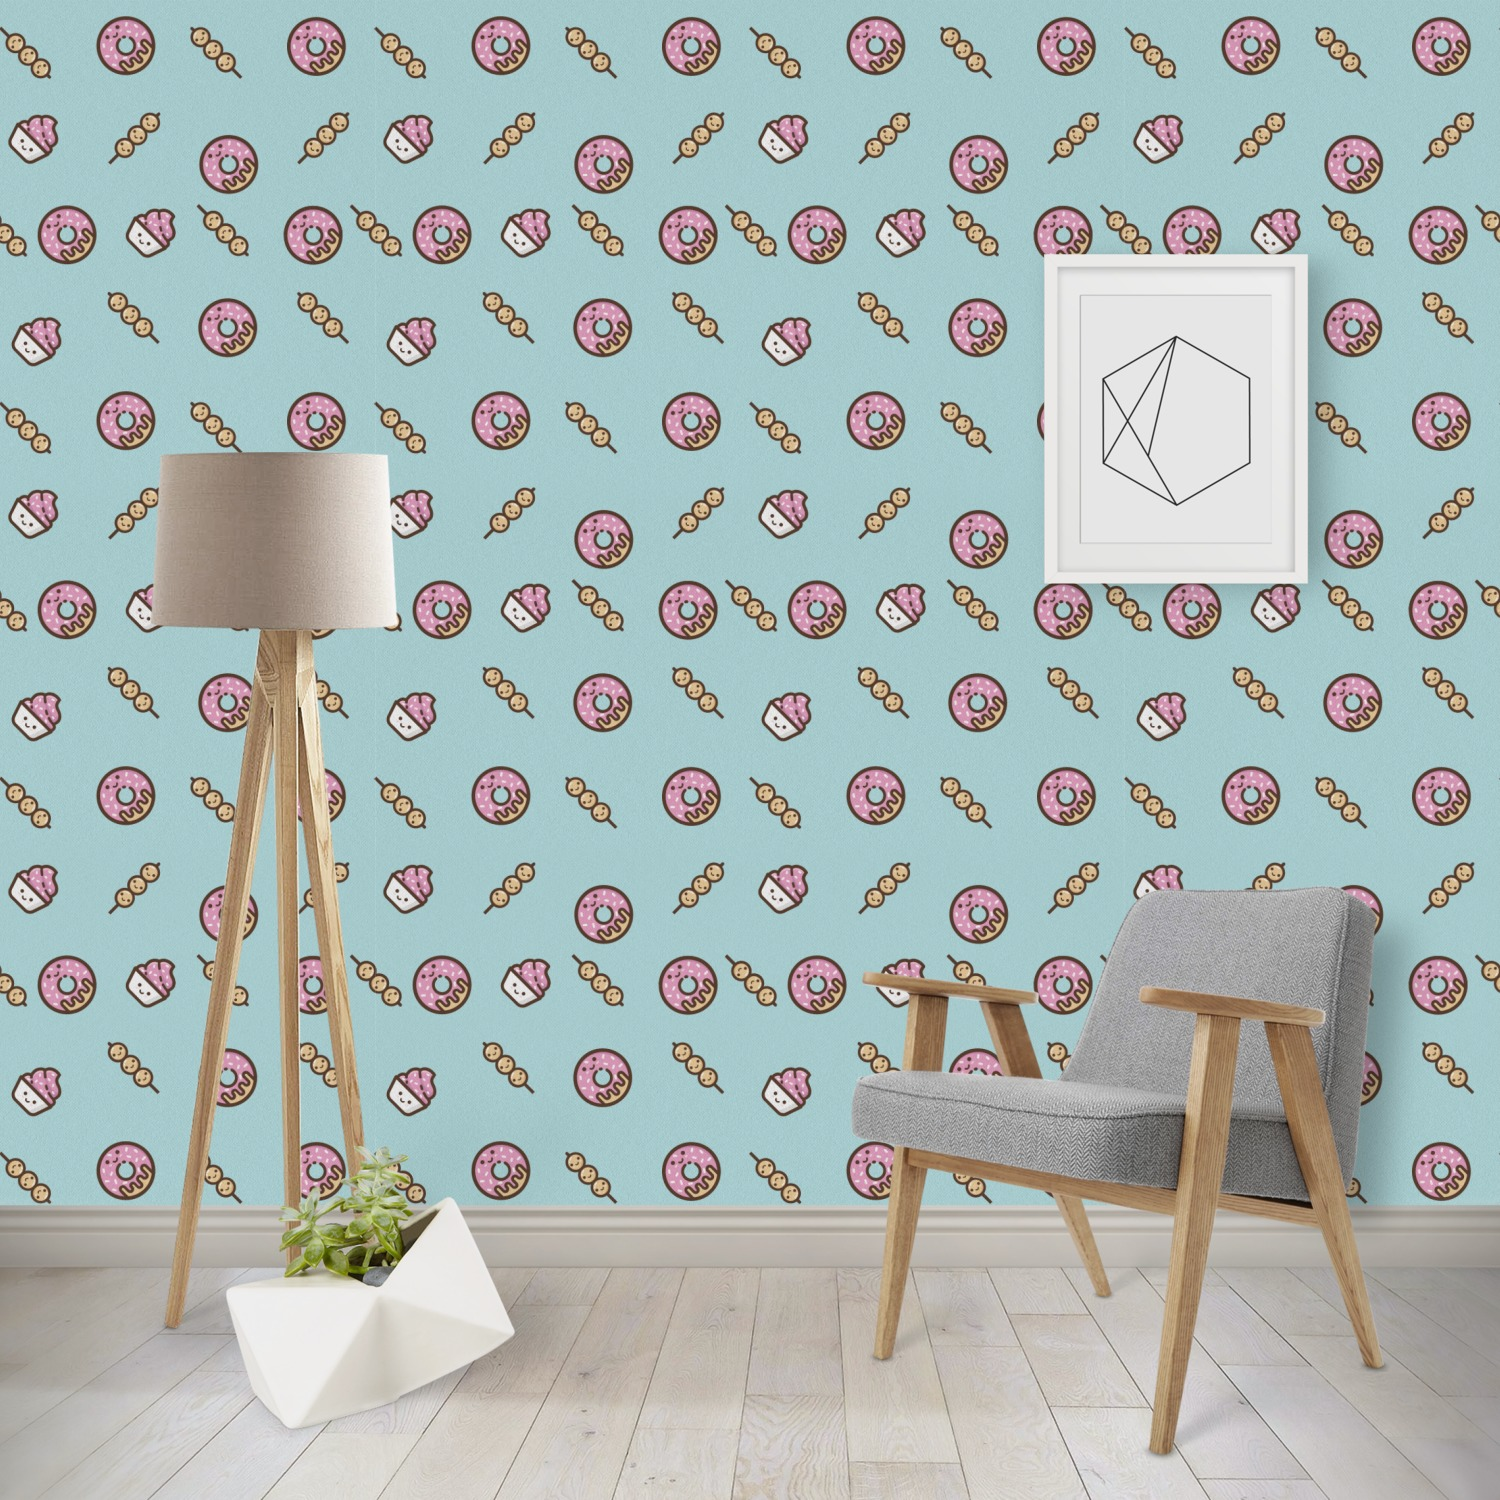 Donuts Wallpaper Surface Covering Peel Stick